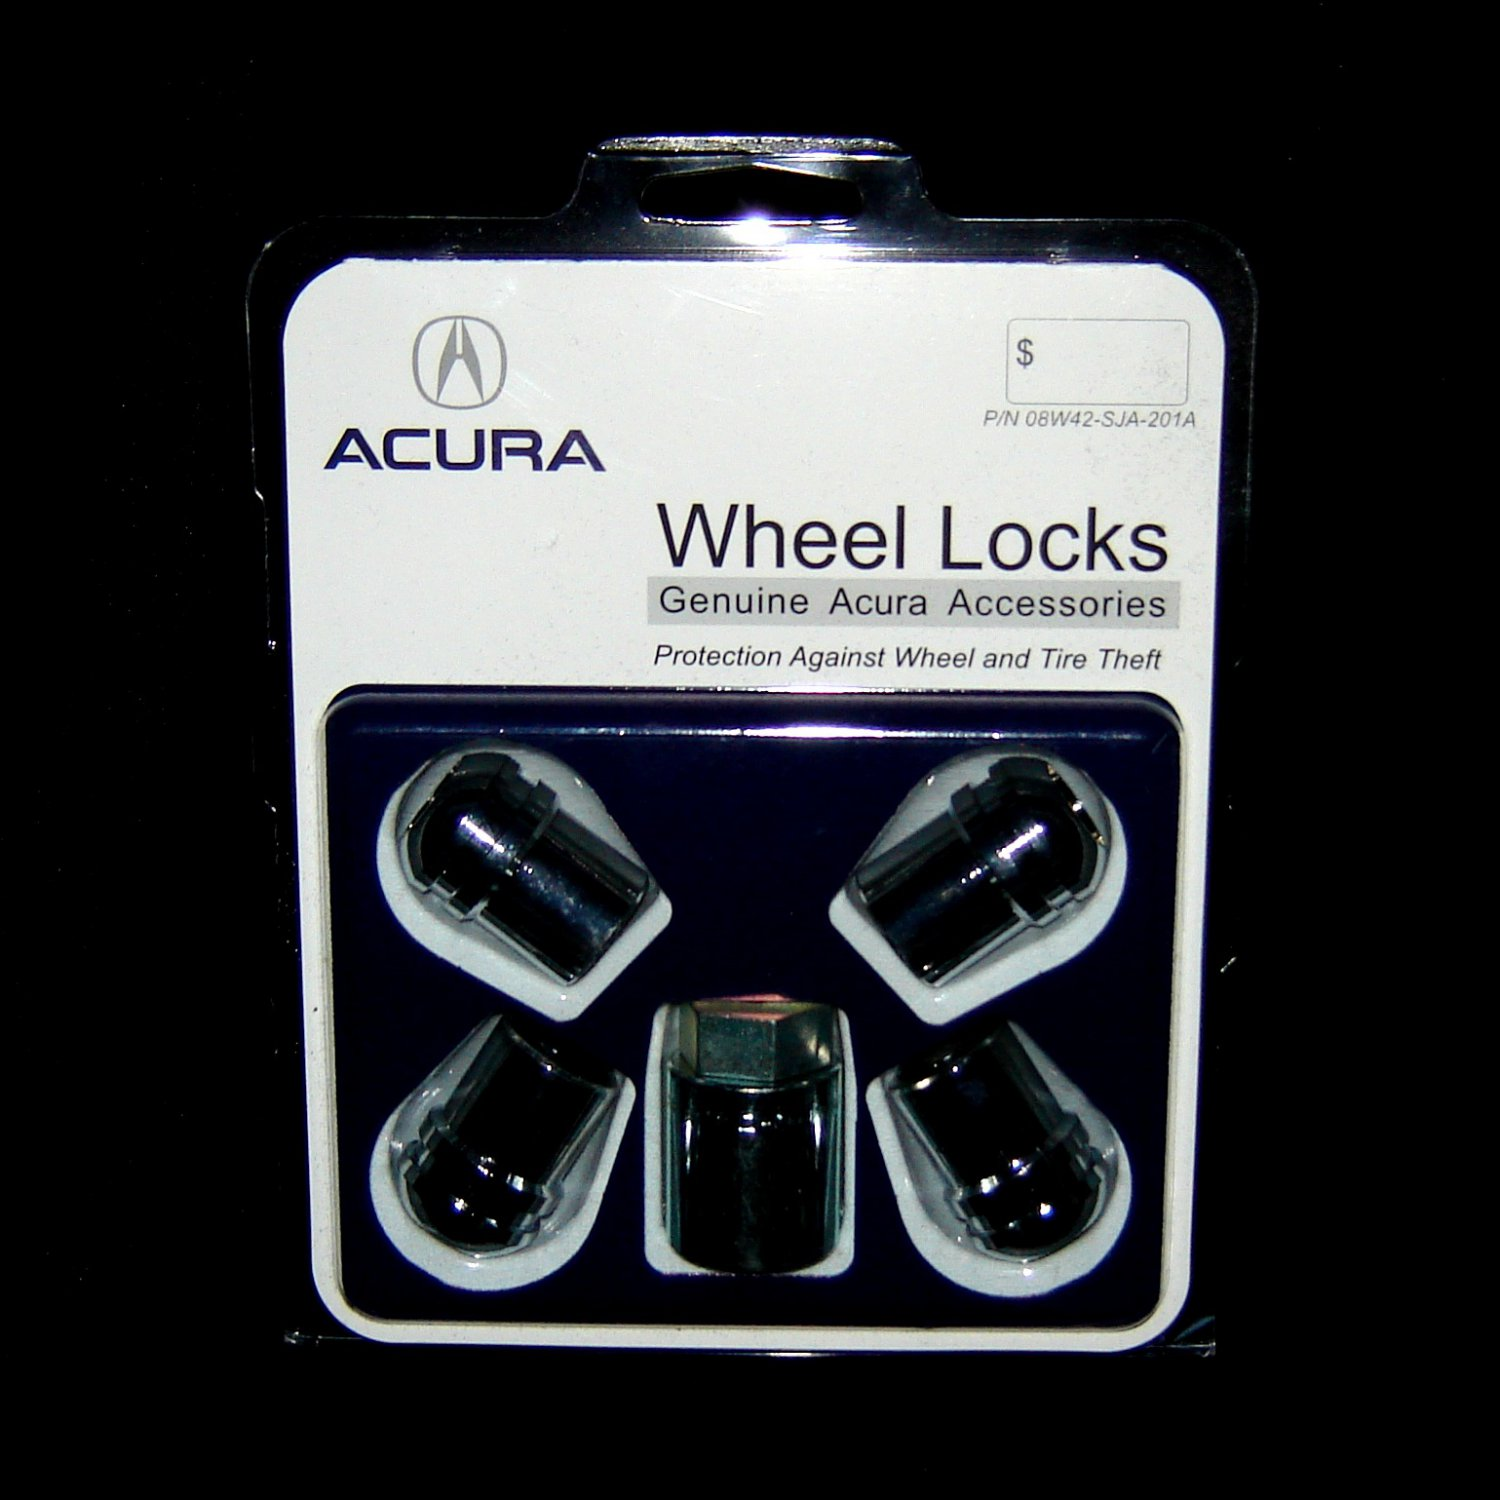 Genuine Acura Protection Accessories